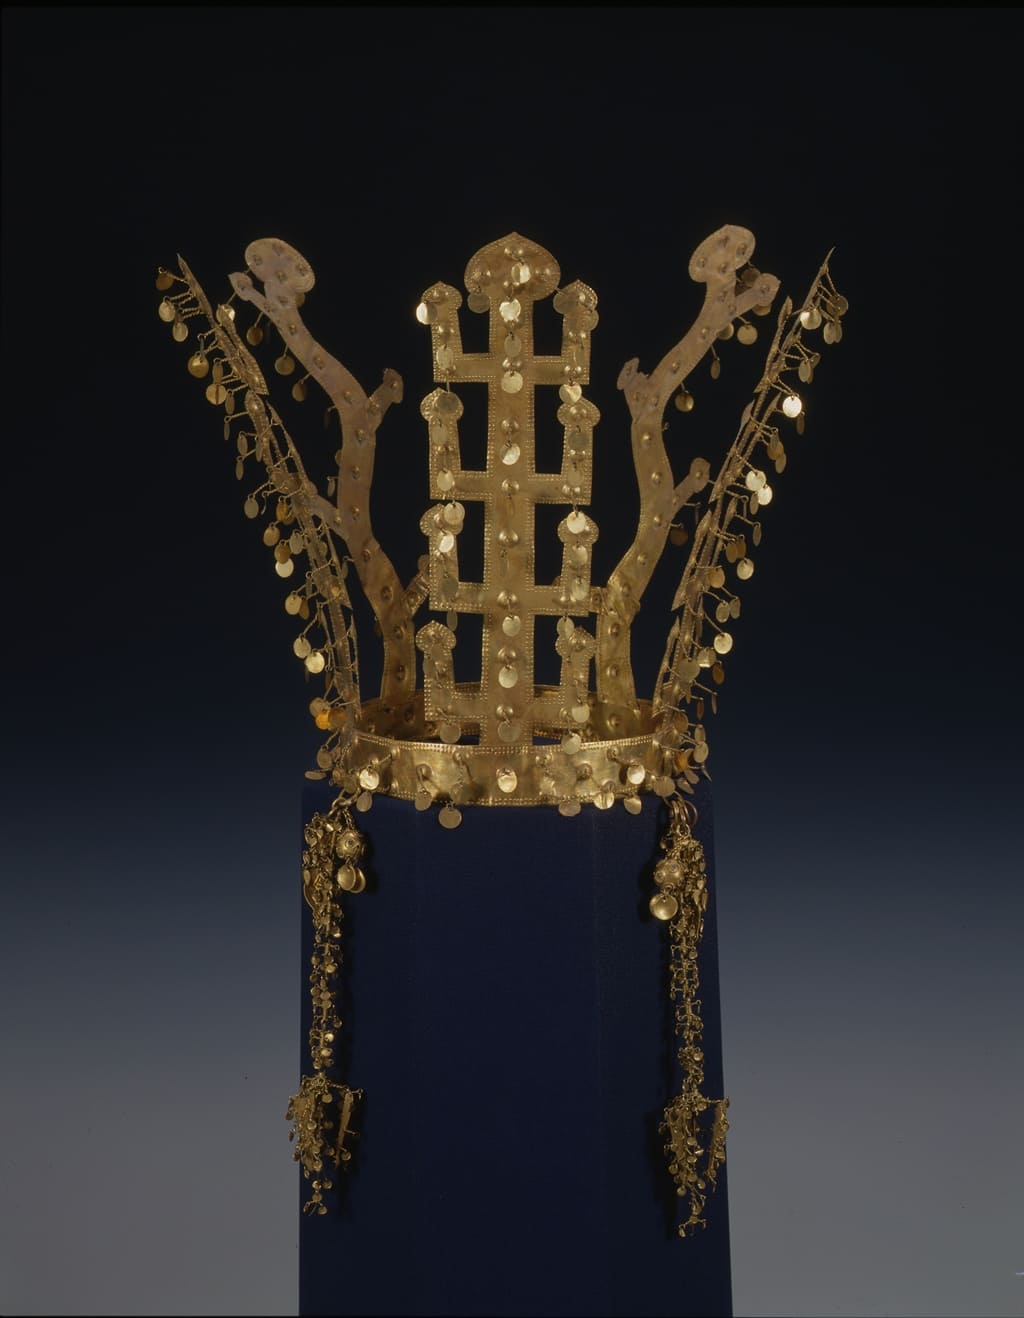 Silla gold crown